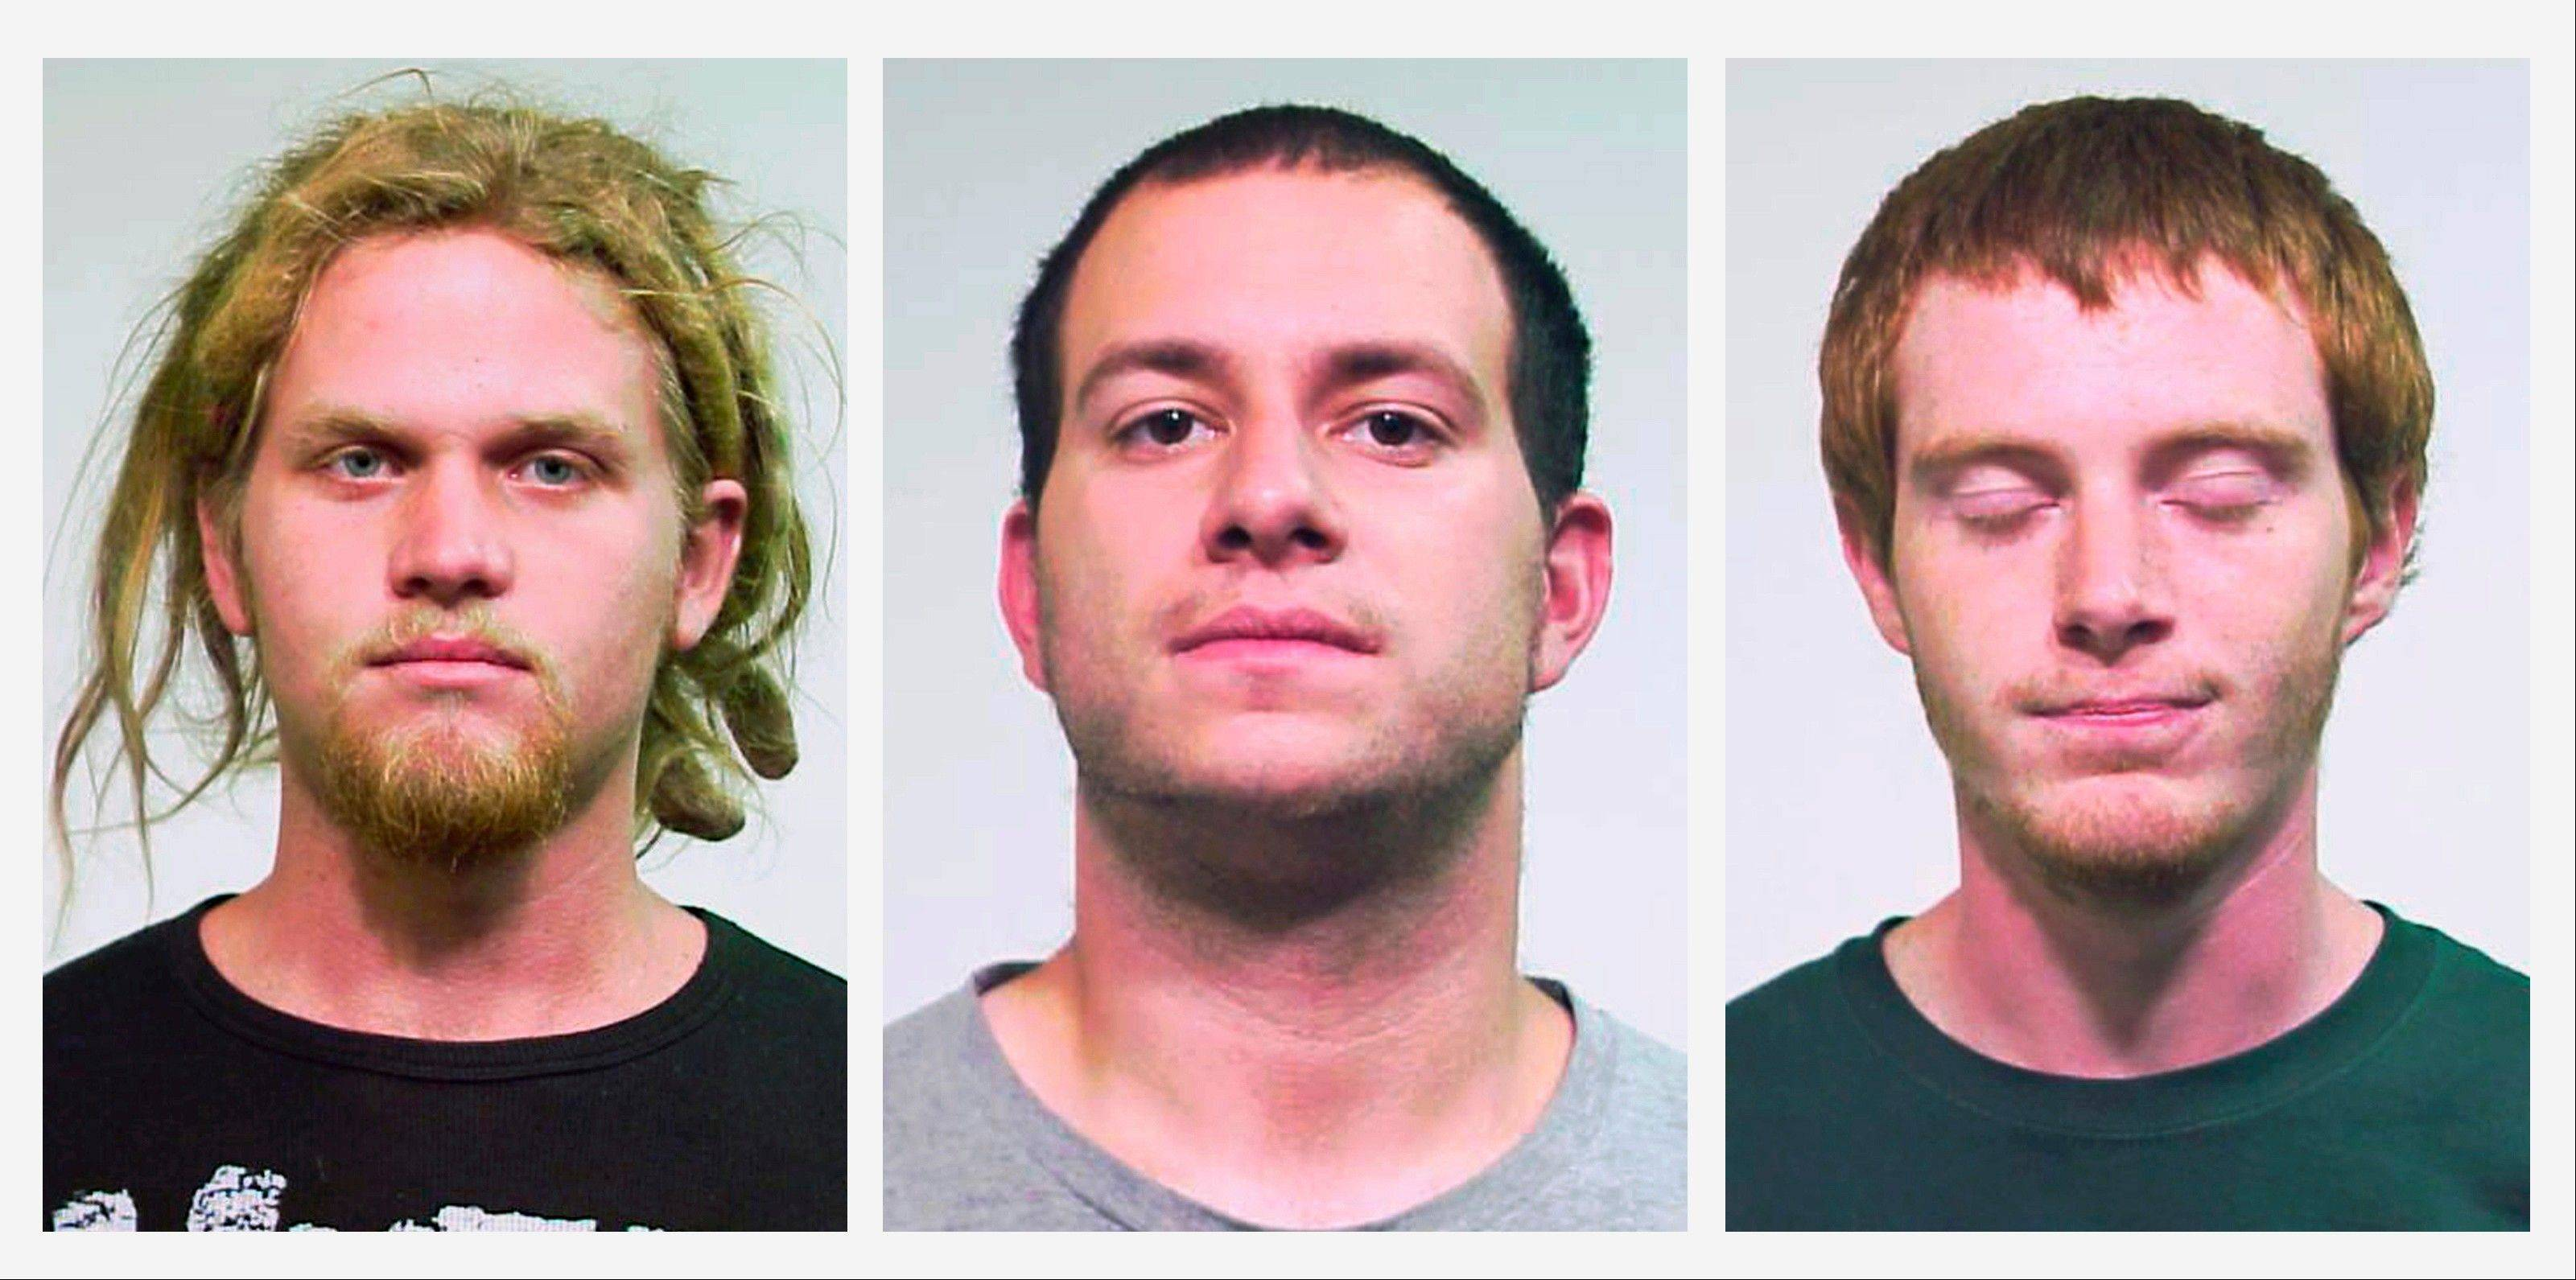 Brent Vincent Betterly, of Oakland Park, Fla., Jared Chase, of Keene, N.H., and Brian Church, of Fort Lauderdale, Fla., are accused of plotting Molotov cocktail attacks during the 2012 NATO summit in Chicago.